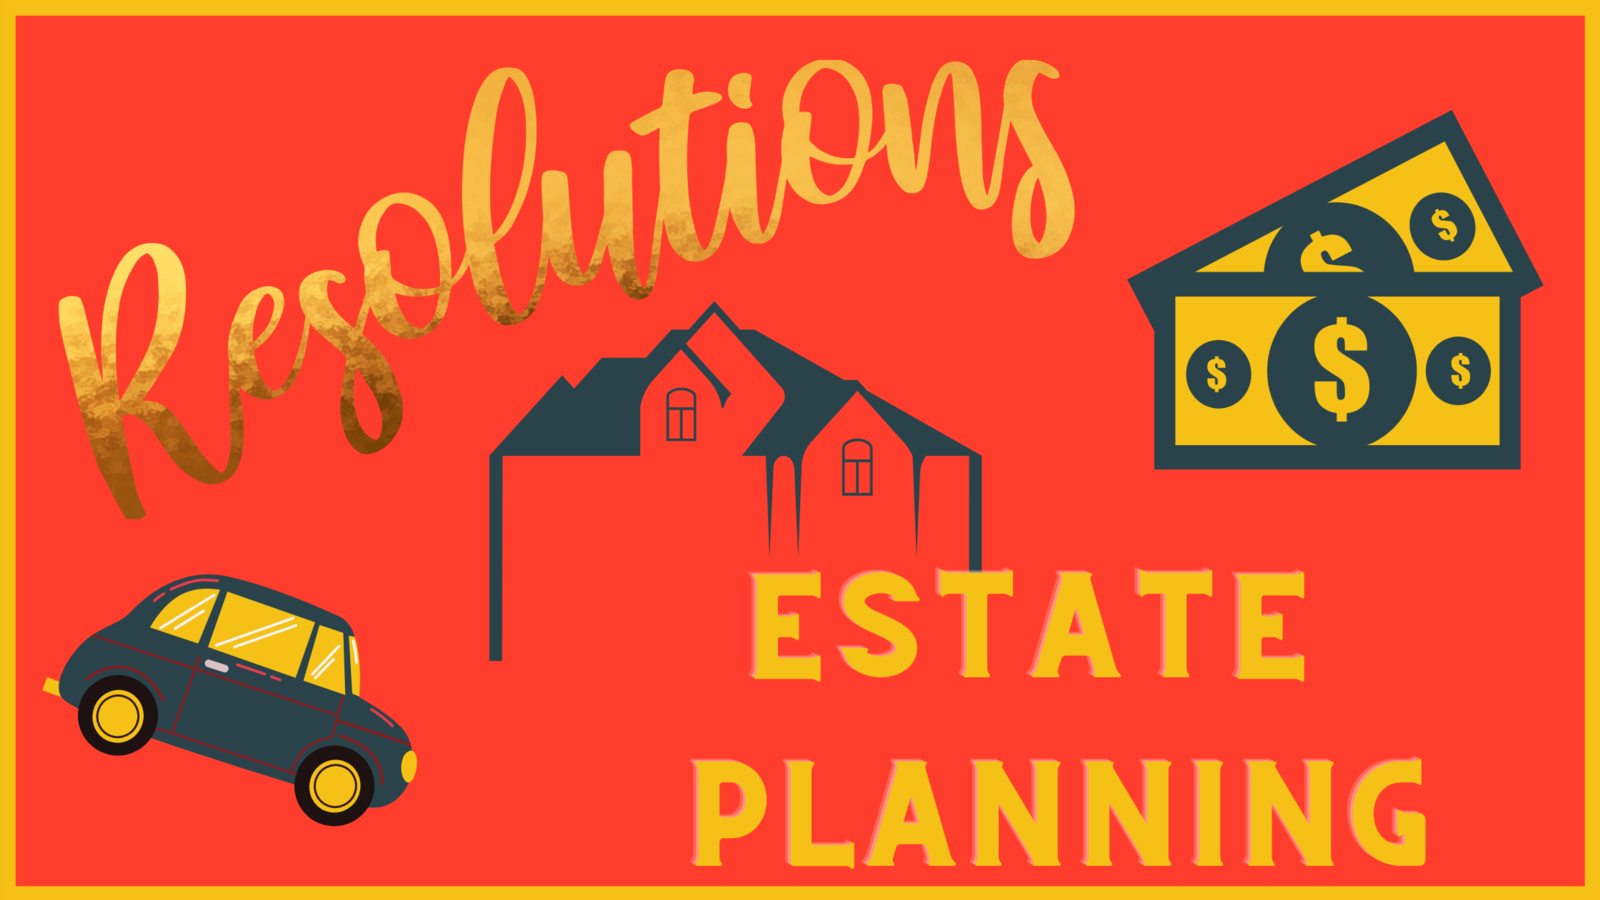 resolution to make estate plan, with a house, a car, and money.